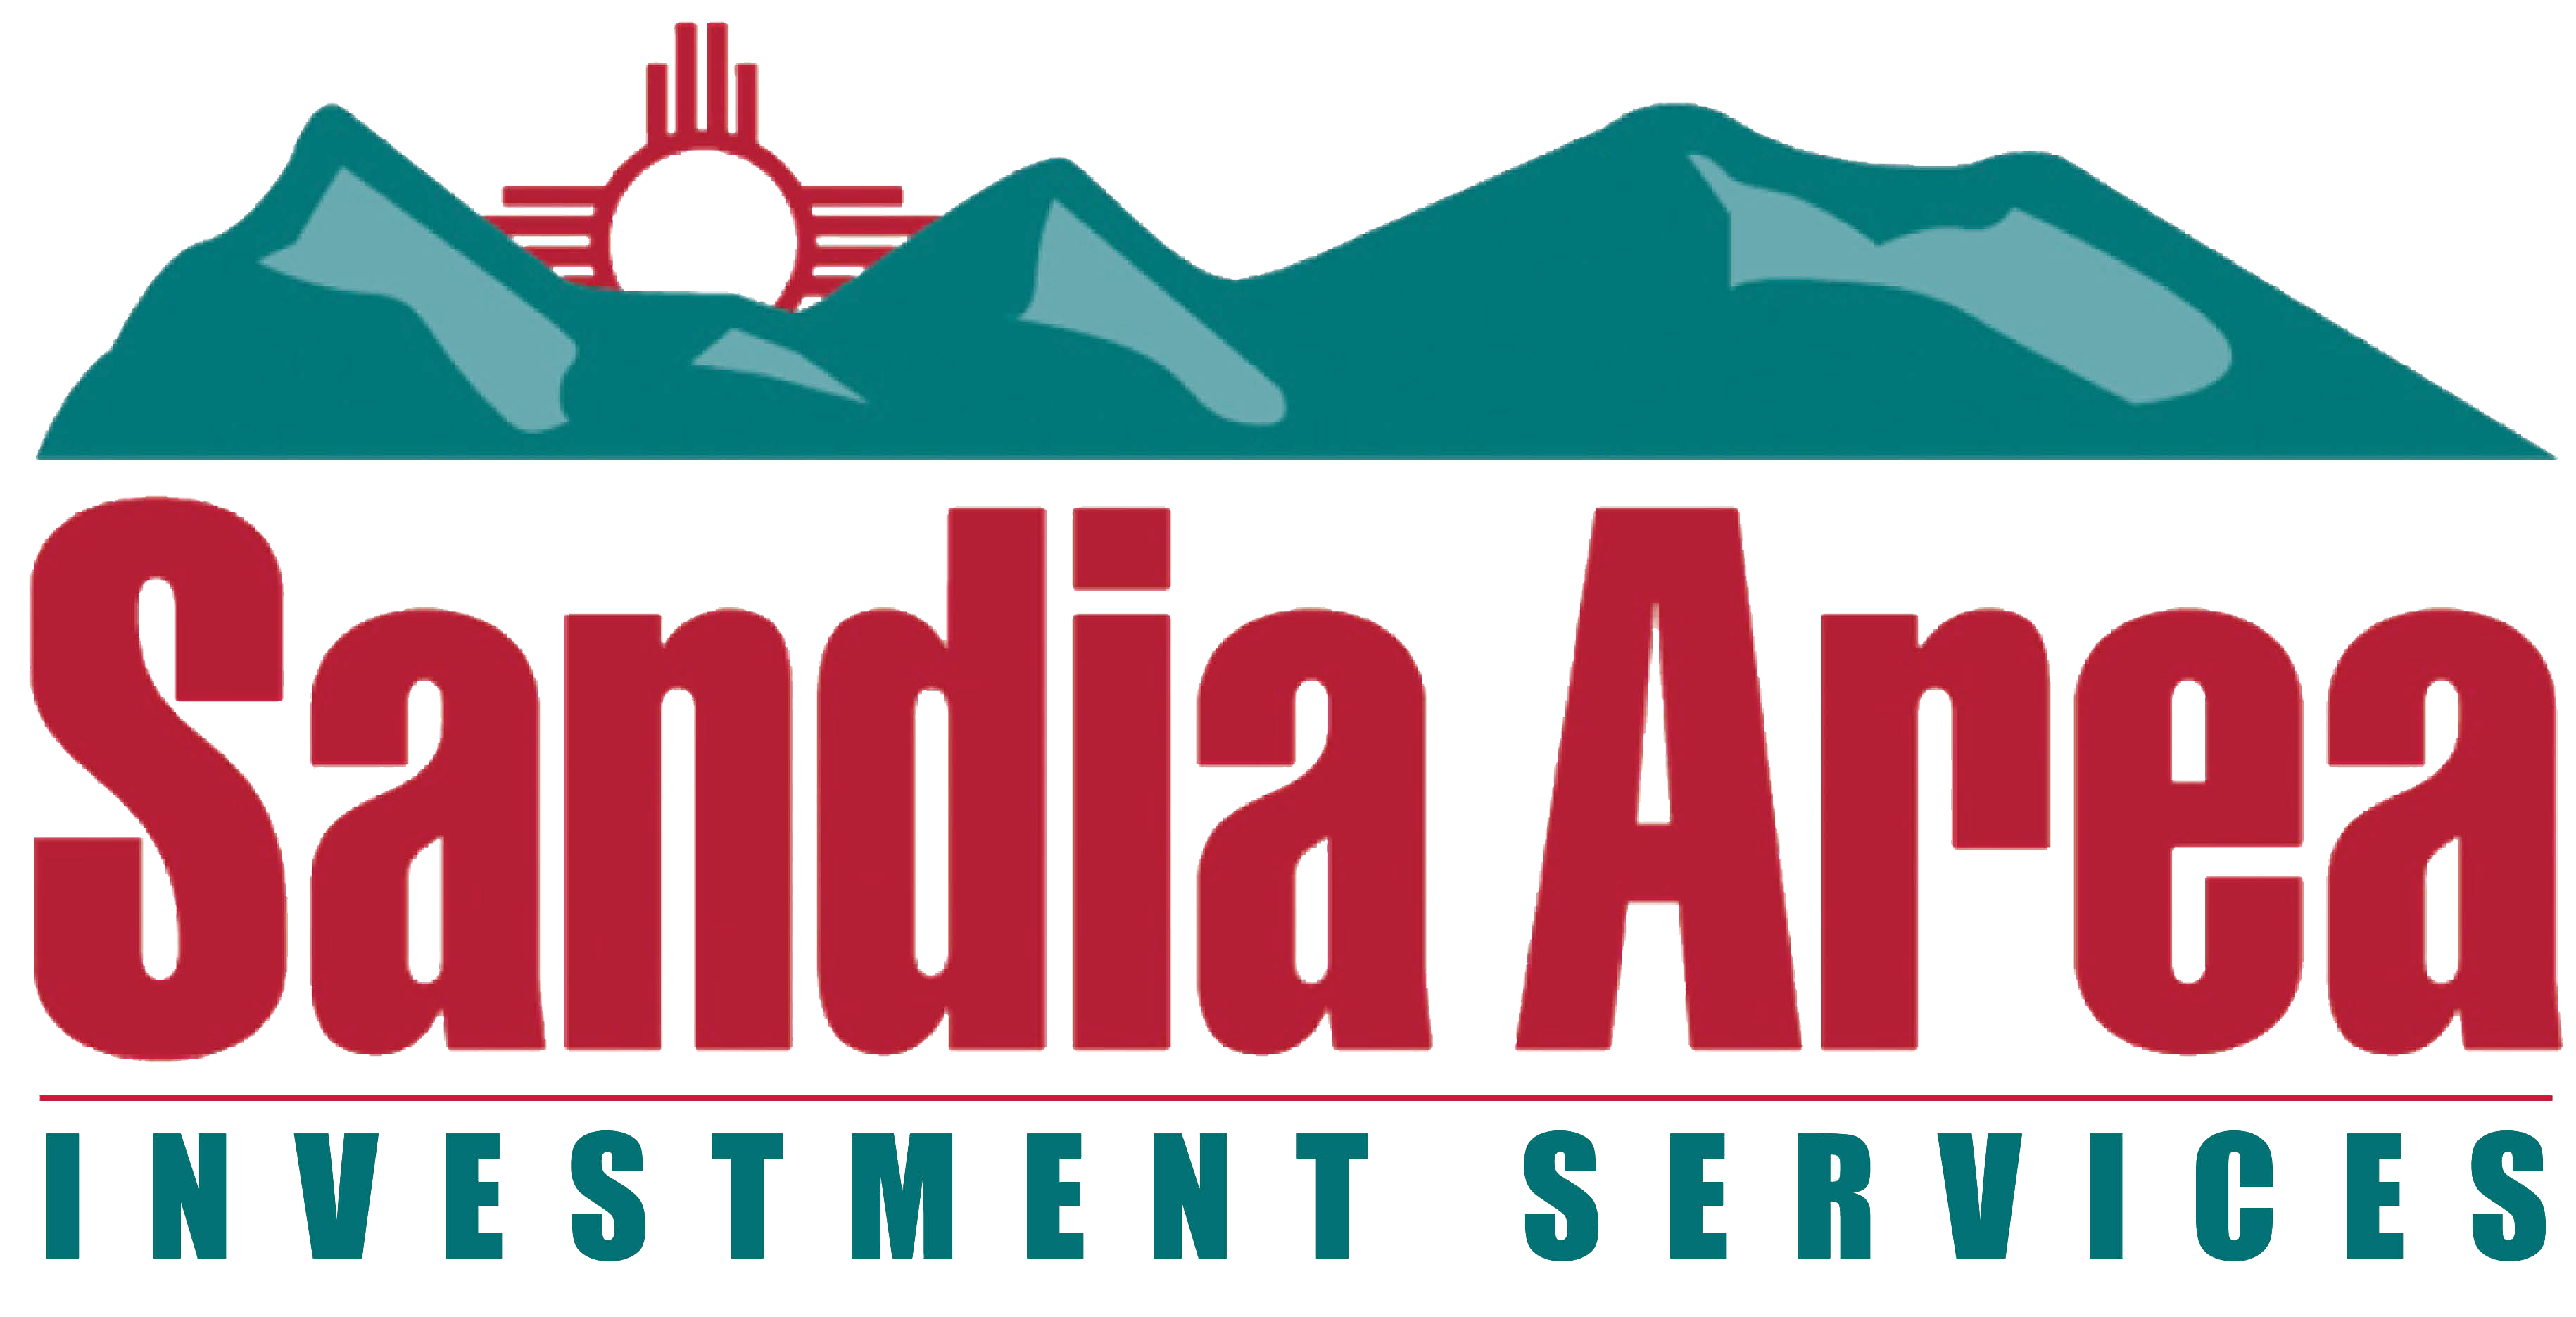 Sandia Area Investment Services